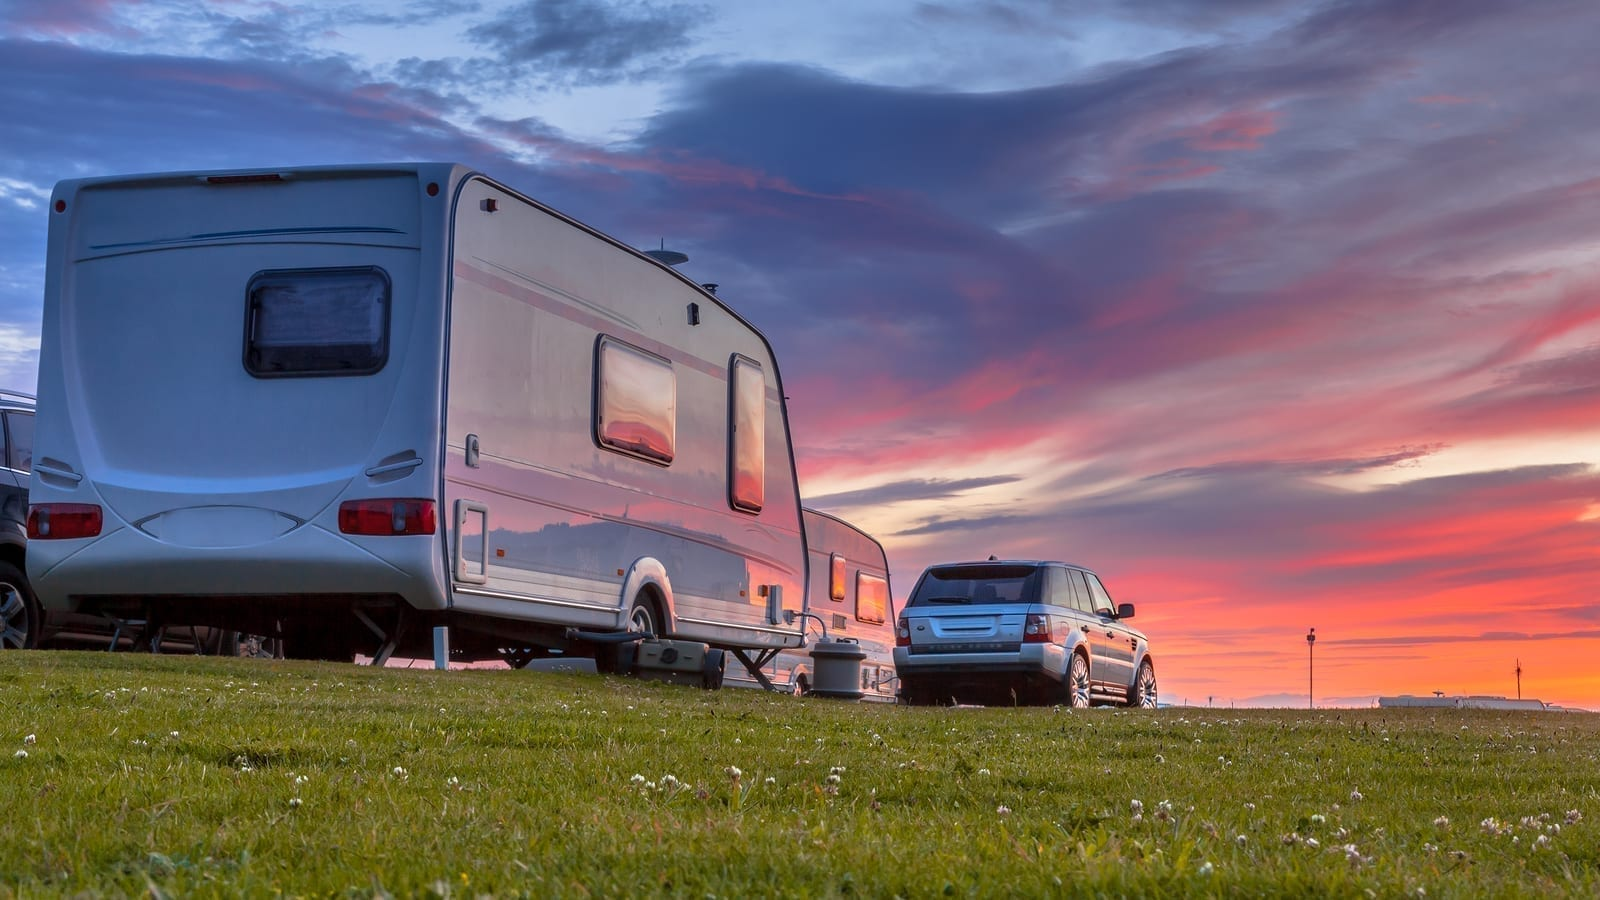 caravan loan calculator, Camping caravans and cars parked on a grassy campground under beautiful sunset, caravan finance, camper loans, gold coast caravan finance, new caravans loan, used caravan credit, private sale, dealer, rv, camping, leisure, lifestyle, camping, travelling, road, roadway, campsite,caravan park,